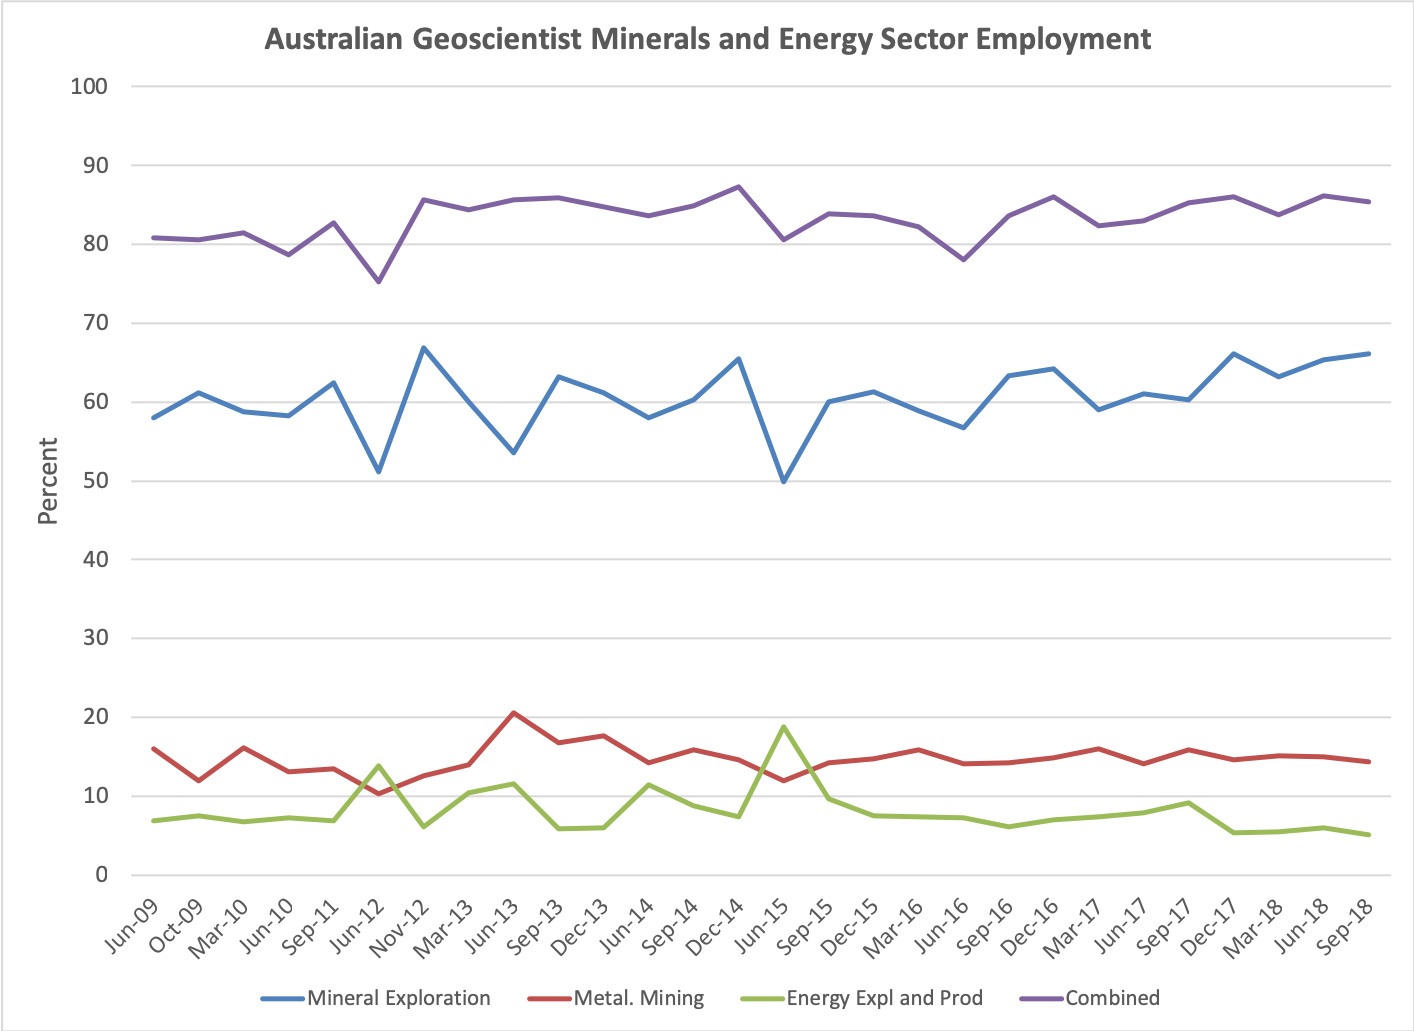 Geoscientist employment in mineral exploration, mining and energy production in Australia, Jun 2009 to September 2018.